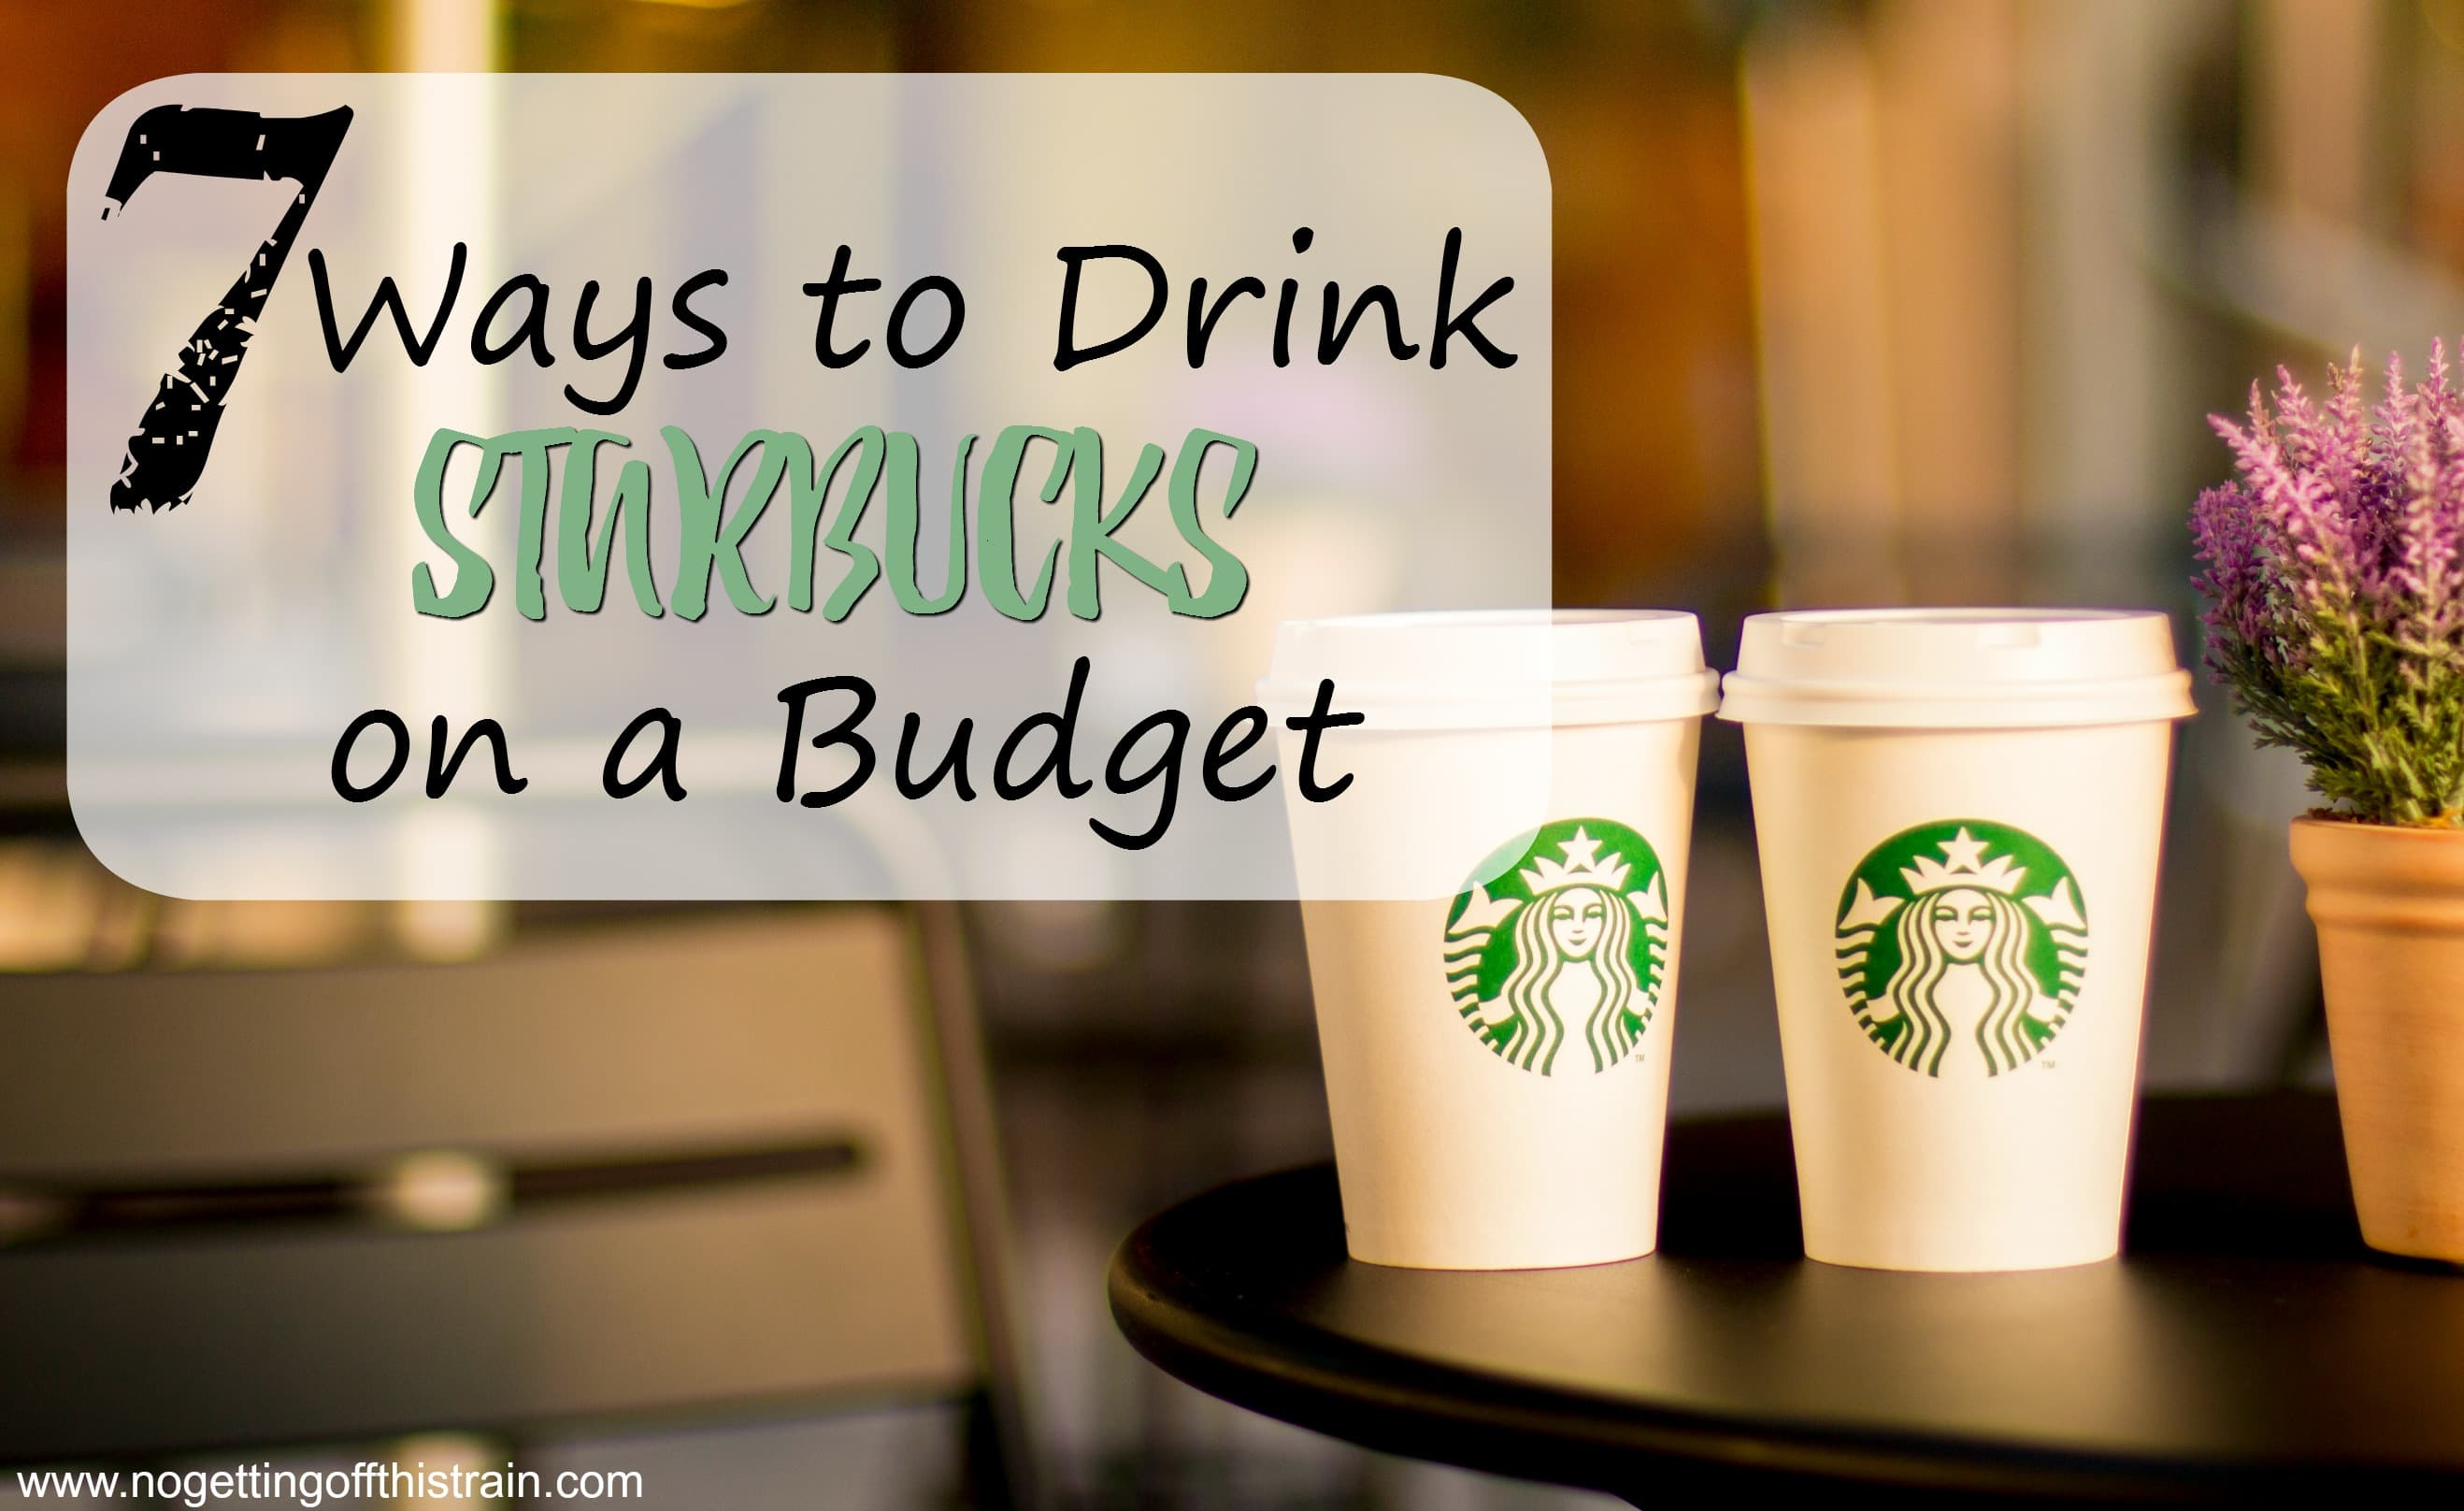 7 Ways to Drink Starbucks on a Budget